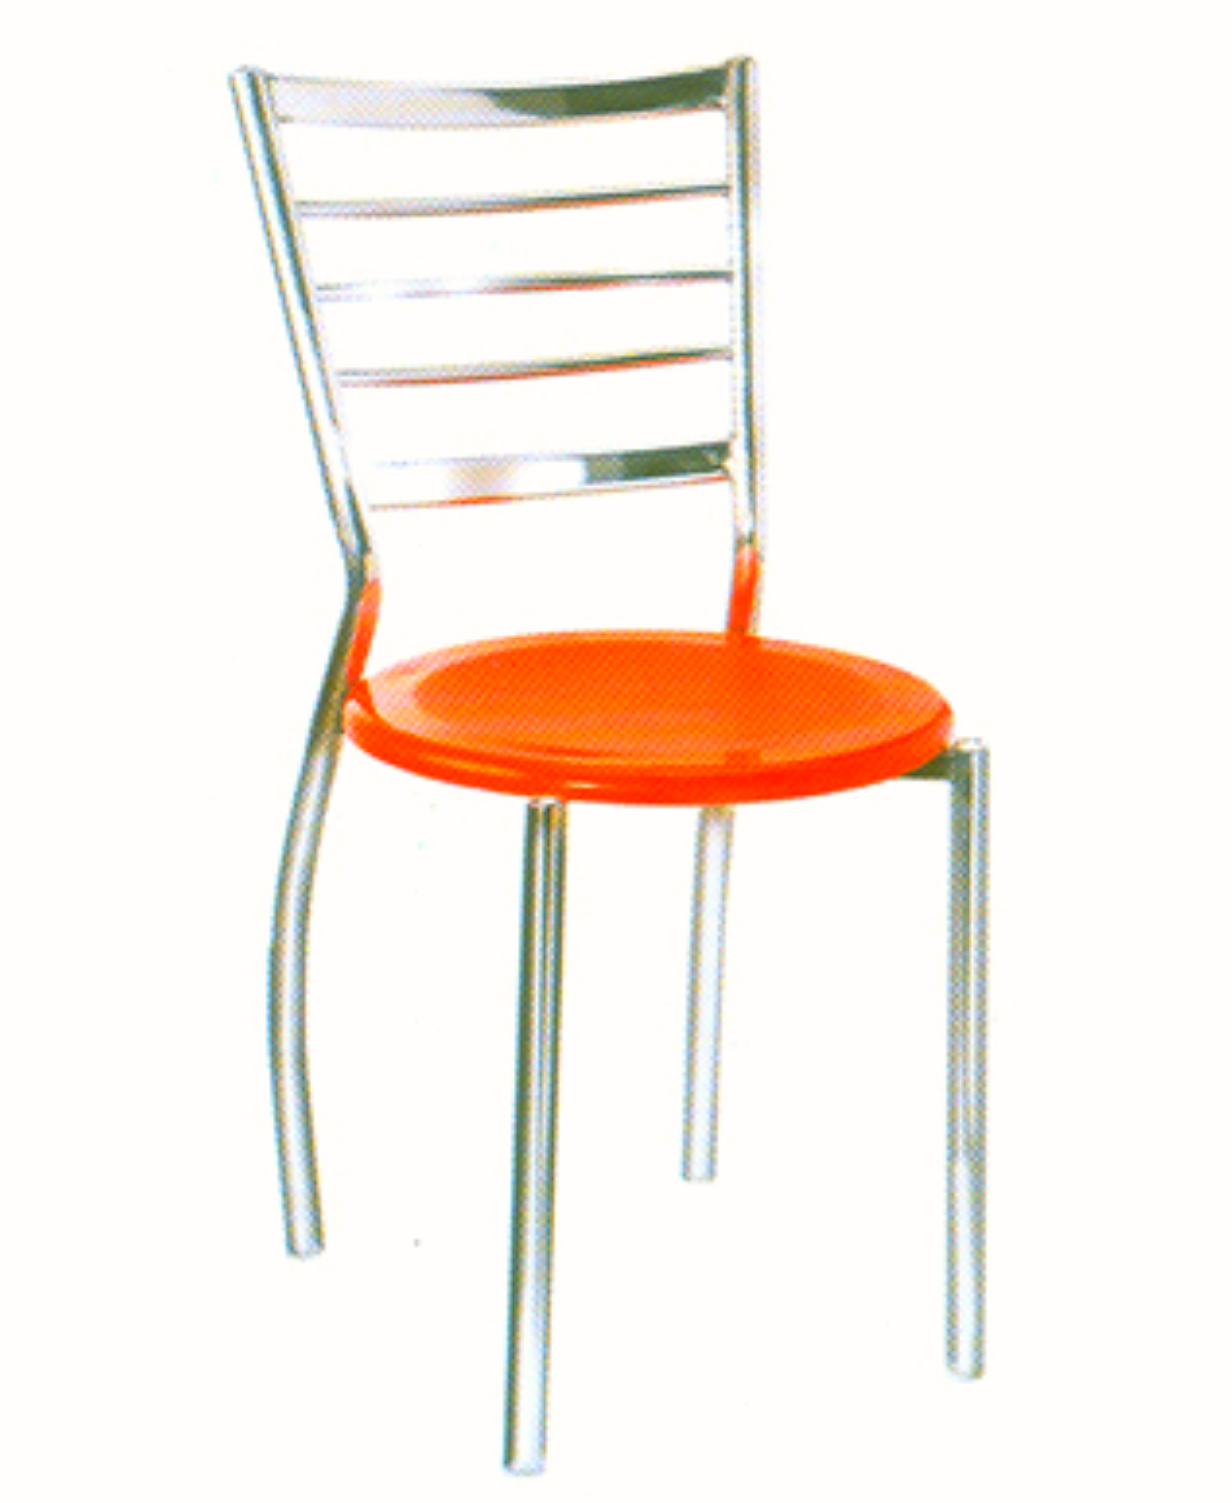 Icrystal group student chair stadium seats cafeteria